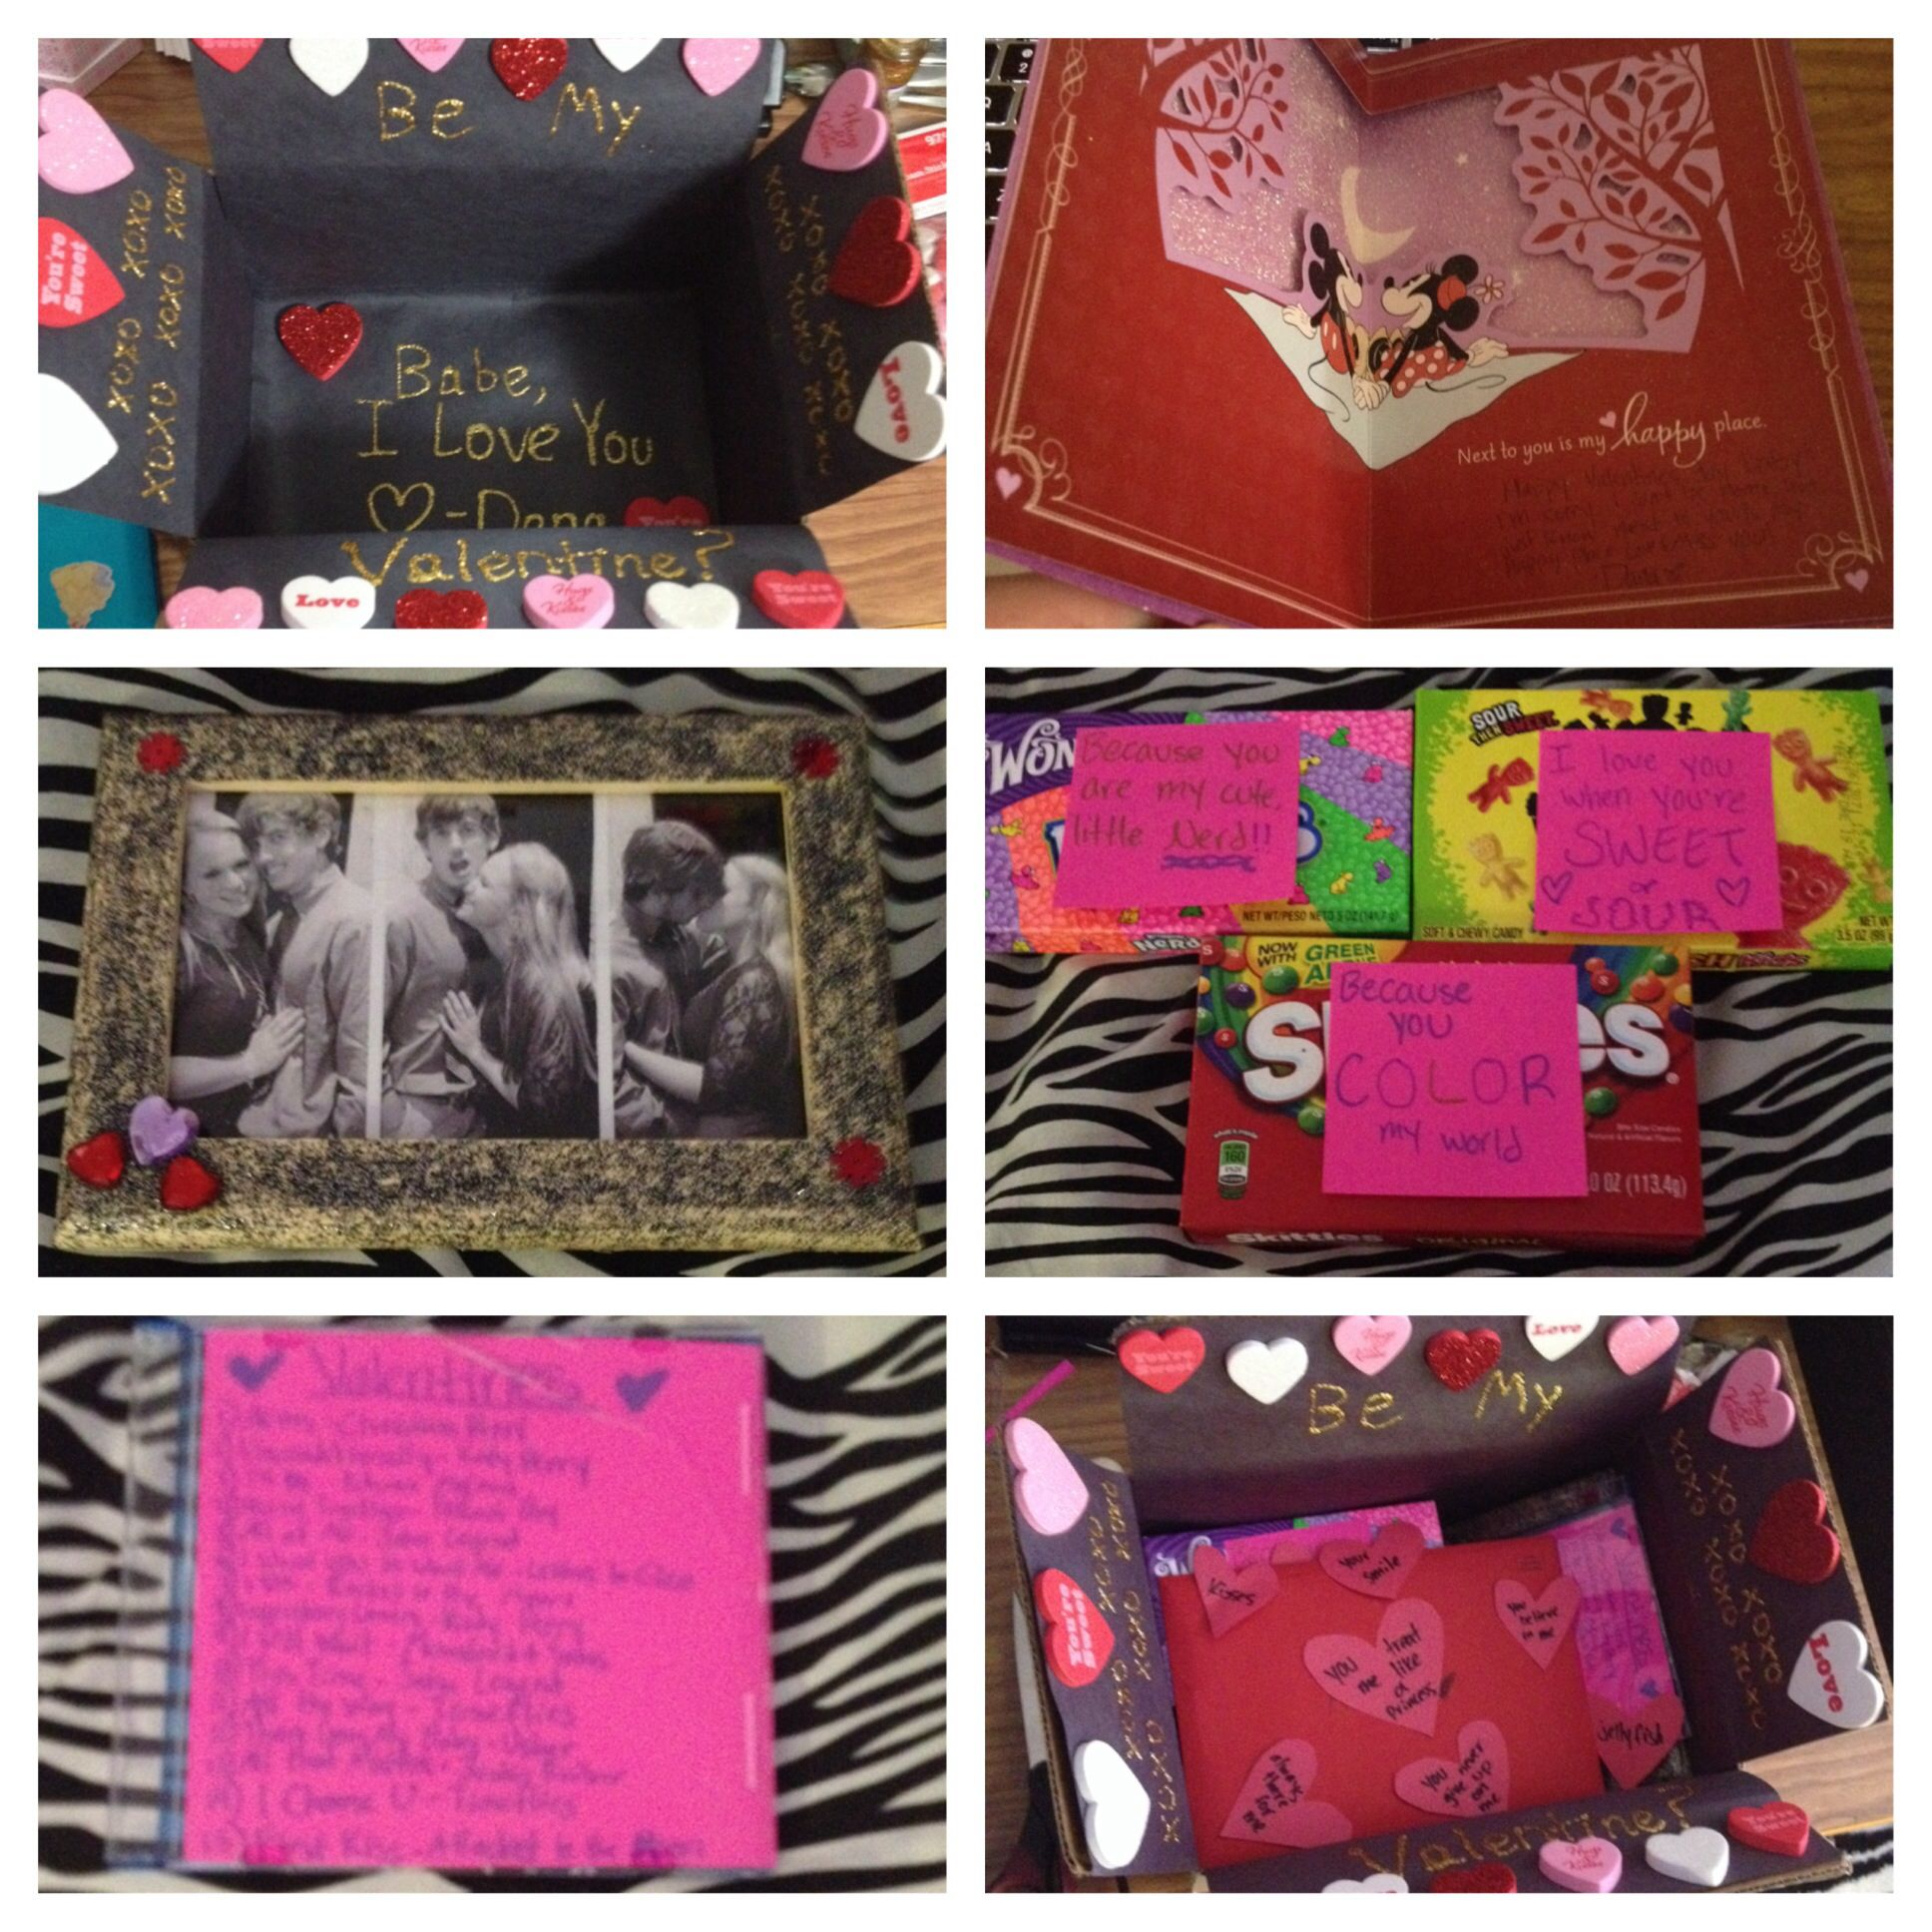 Valentines t for my long distance babe Decorated the box gave